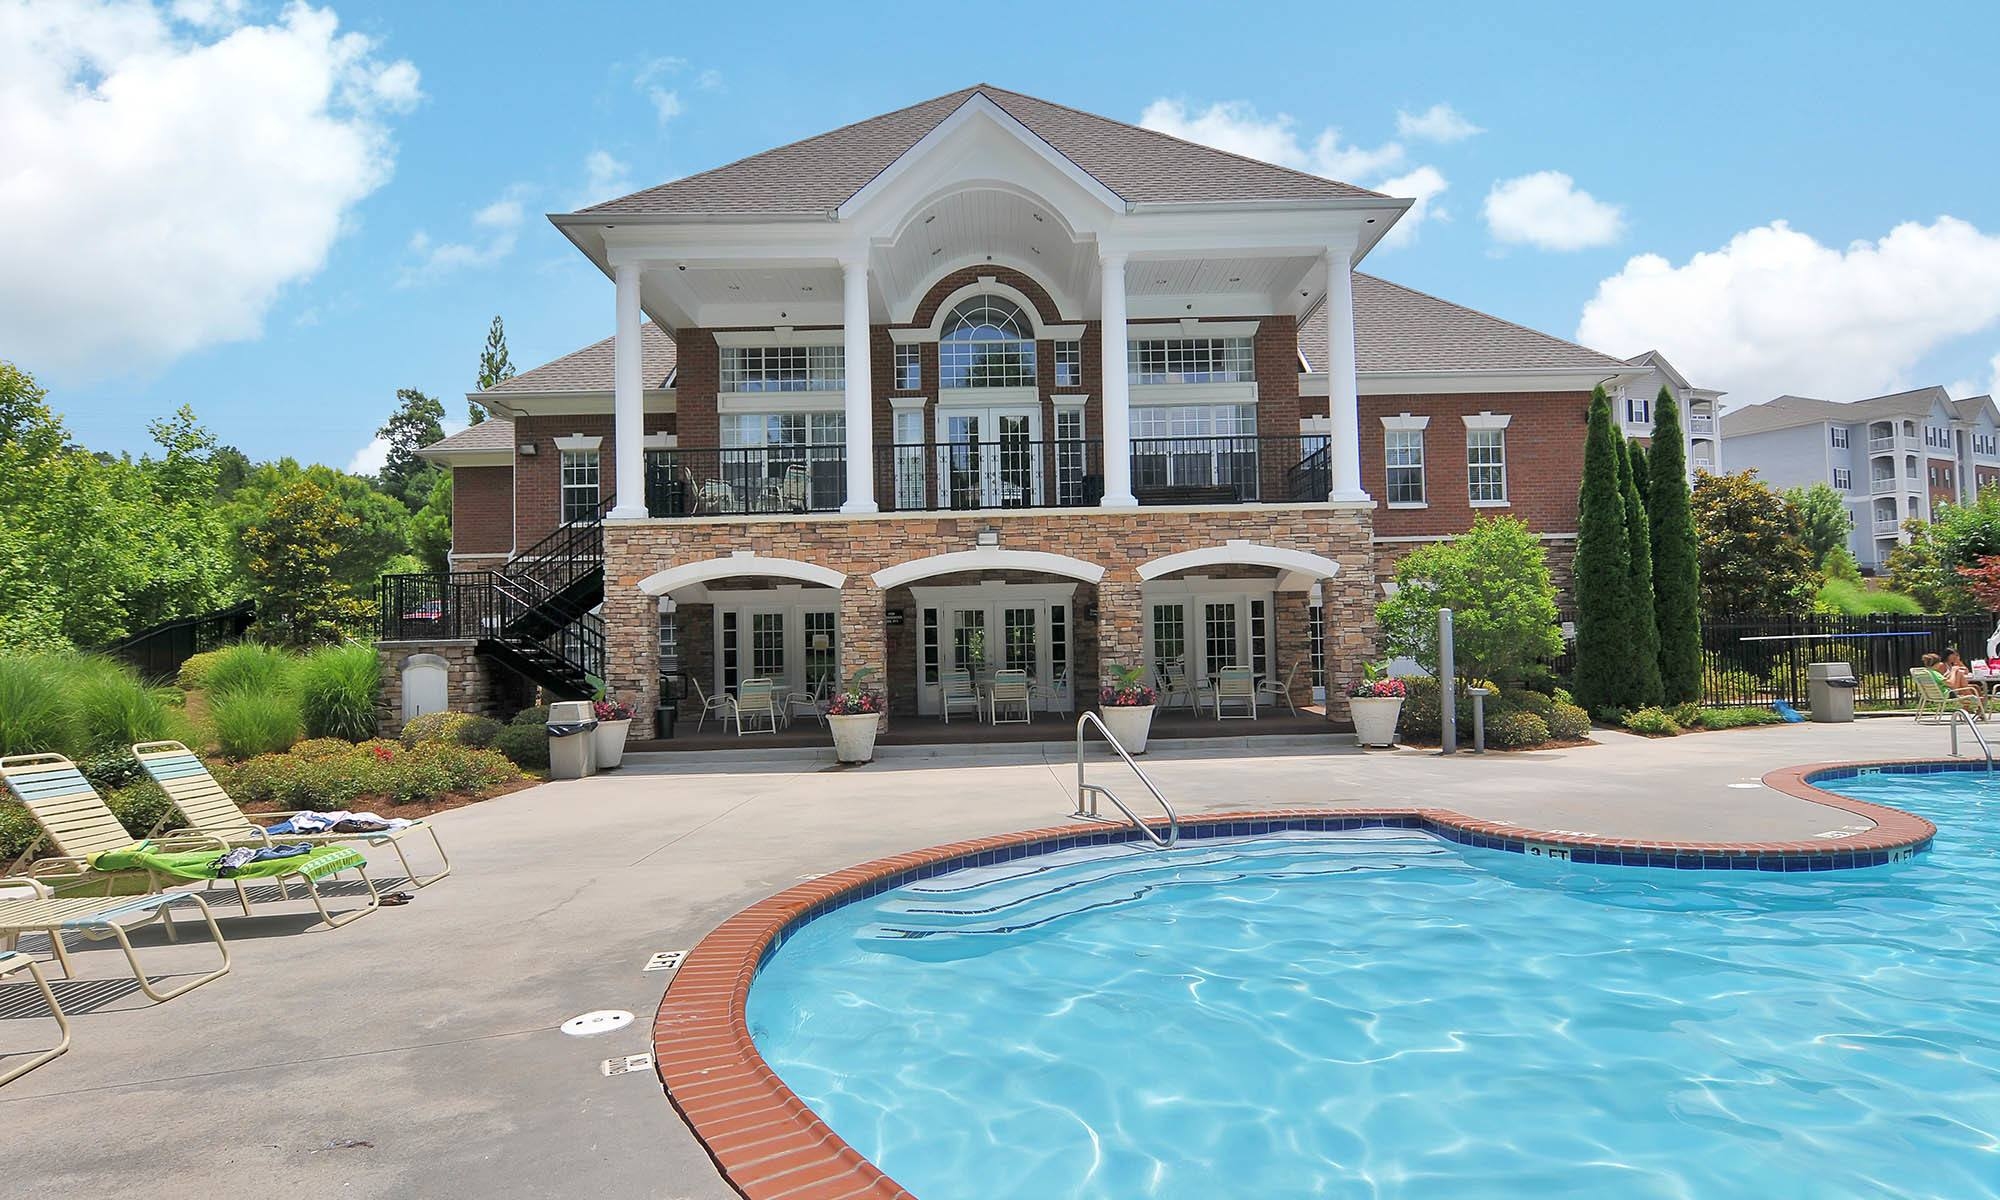 Pool house at apartments in Buford